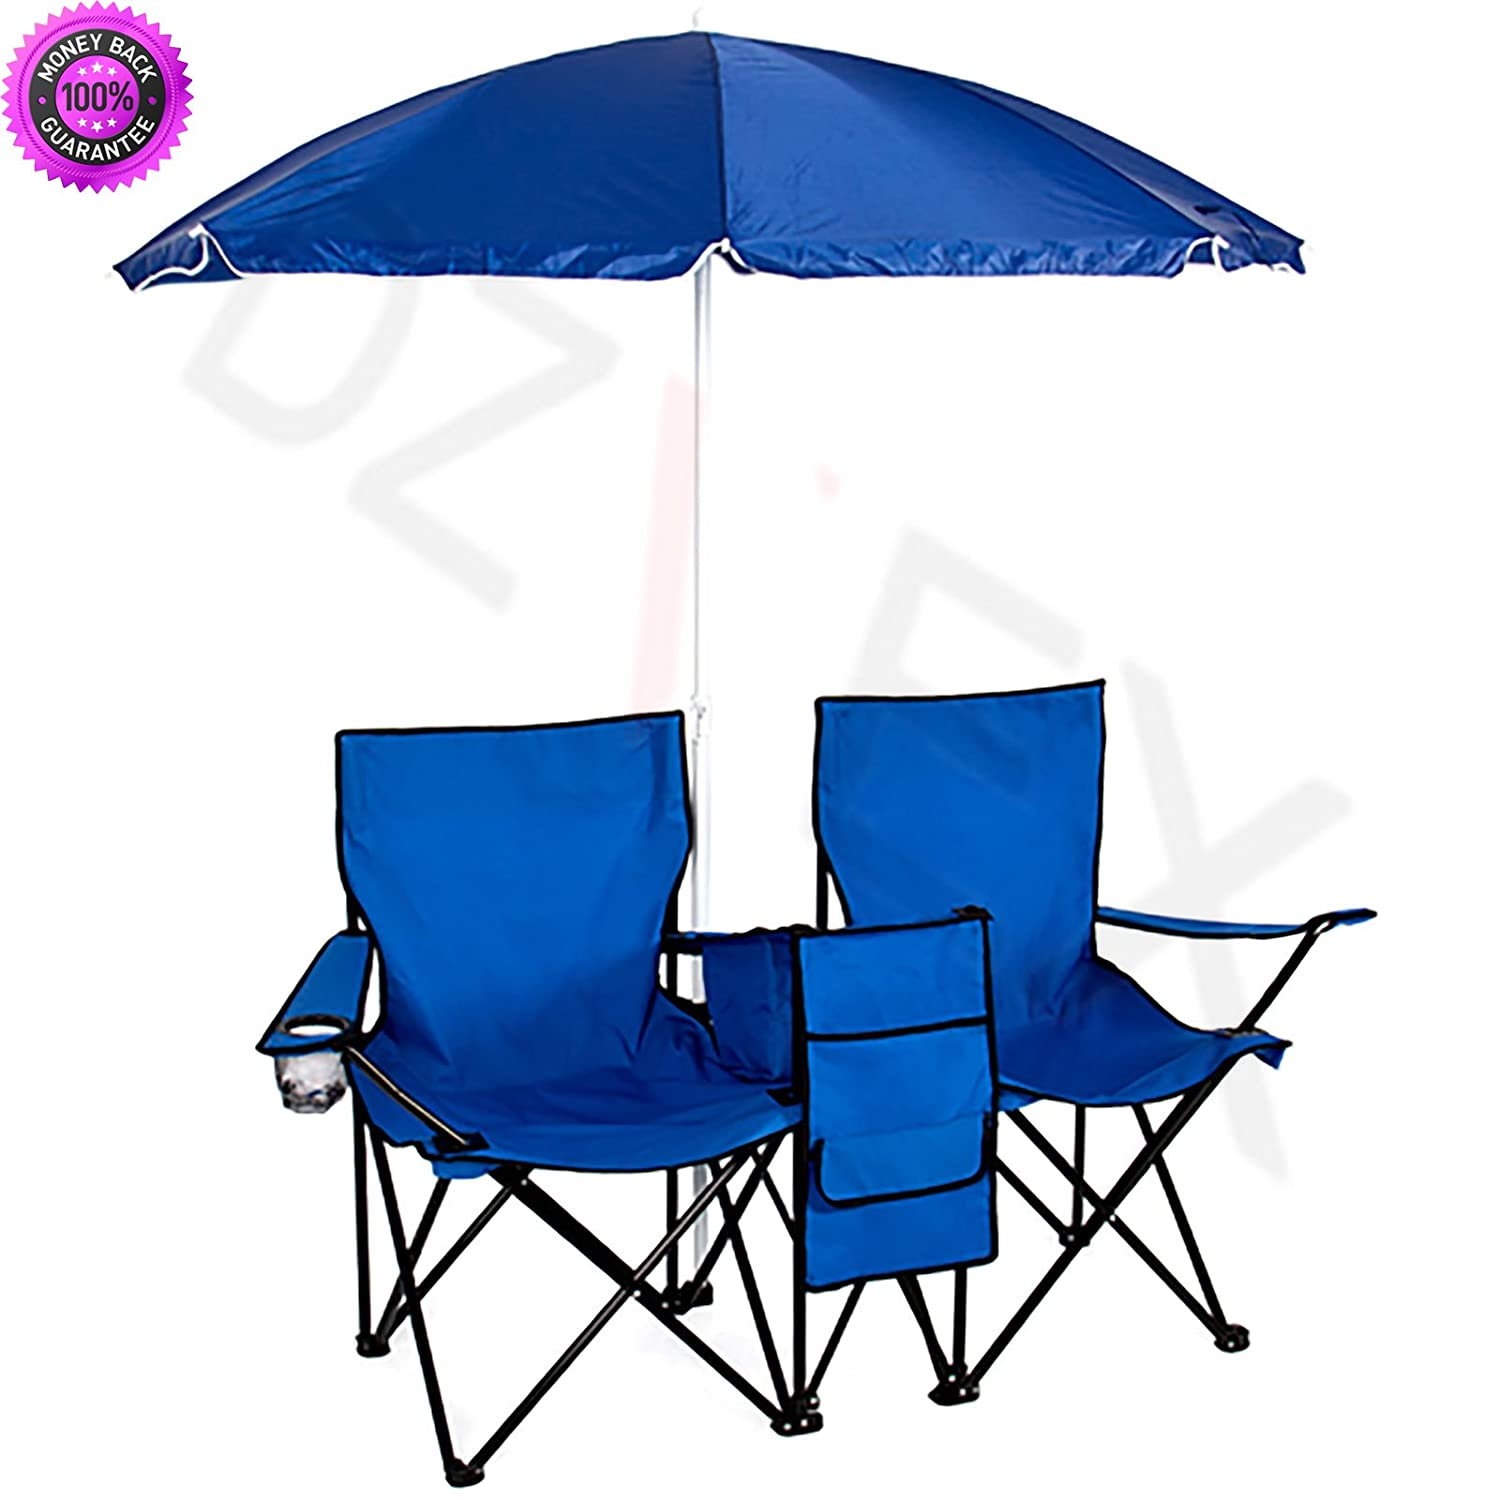 Strange Amazon Com Dzvex Picnic Double Folding Chair W Umbrella Ibusinesslaw Wood Chair Design Ideas Ibusinesslaworg